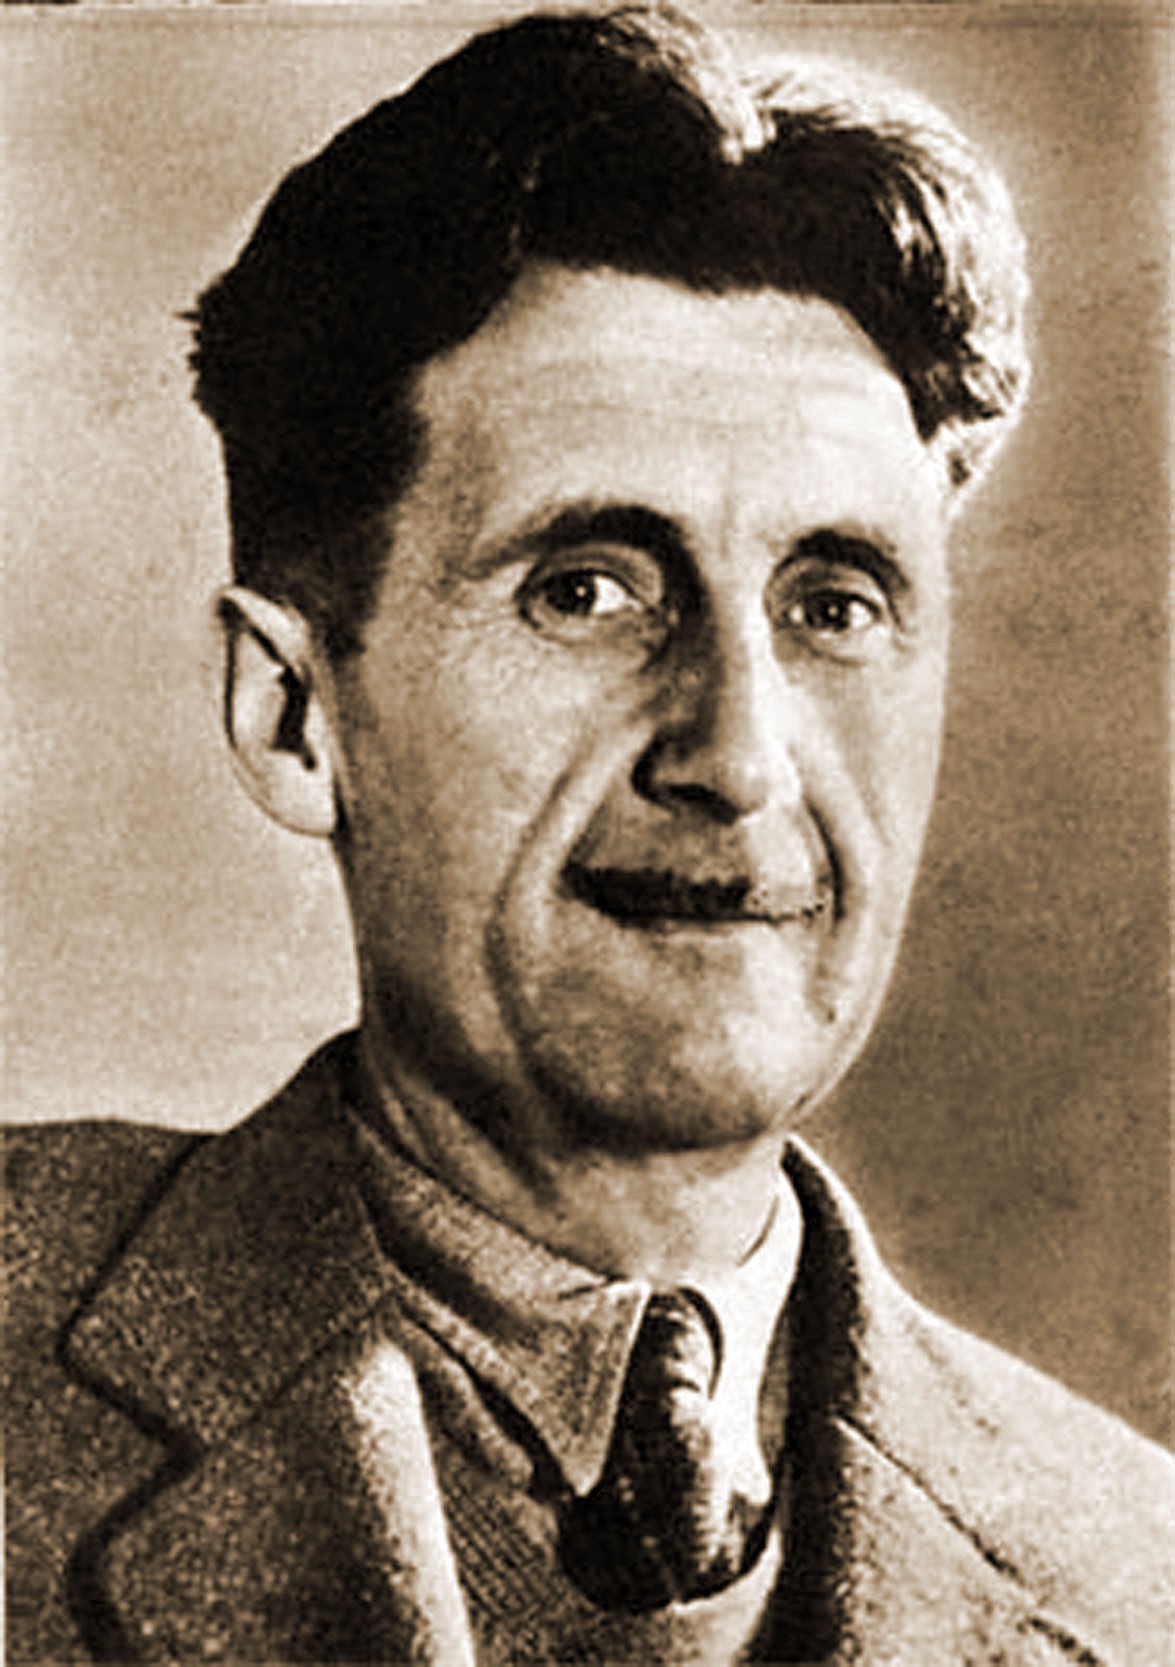 a biography of george orwell Enjoy the best george orwell quotes at brainyquote quotations by george orwell, british author, born june 25, 1903 share with your friends.